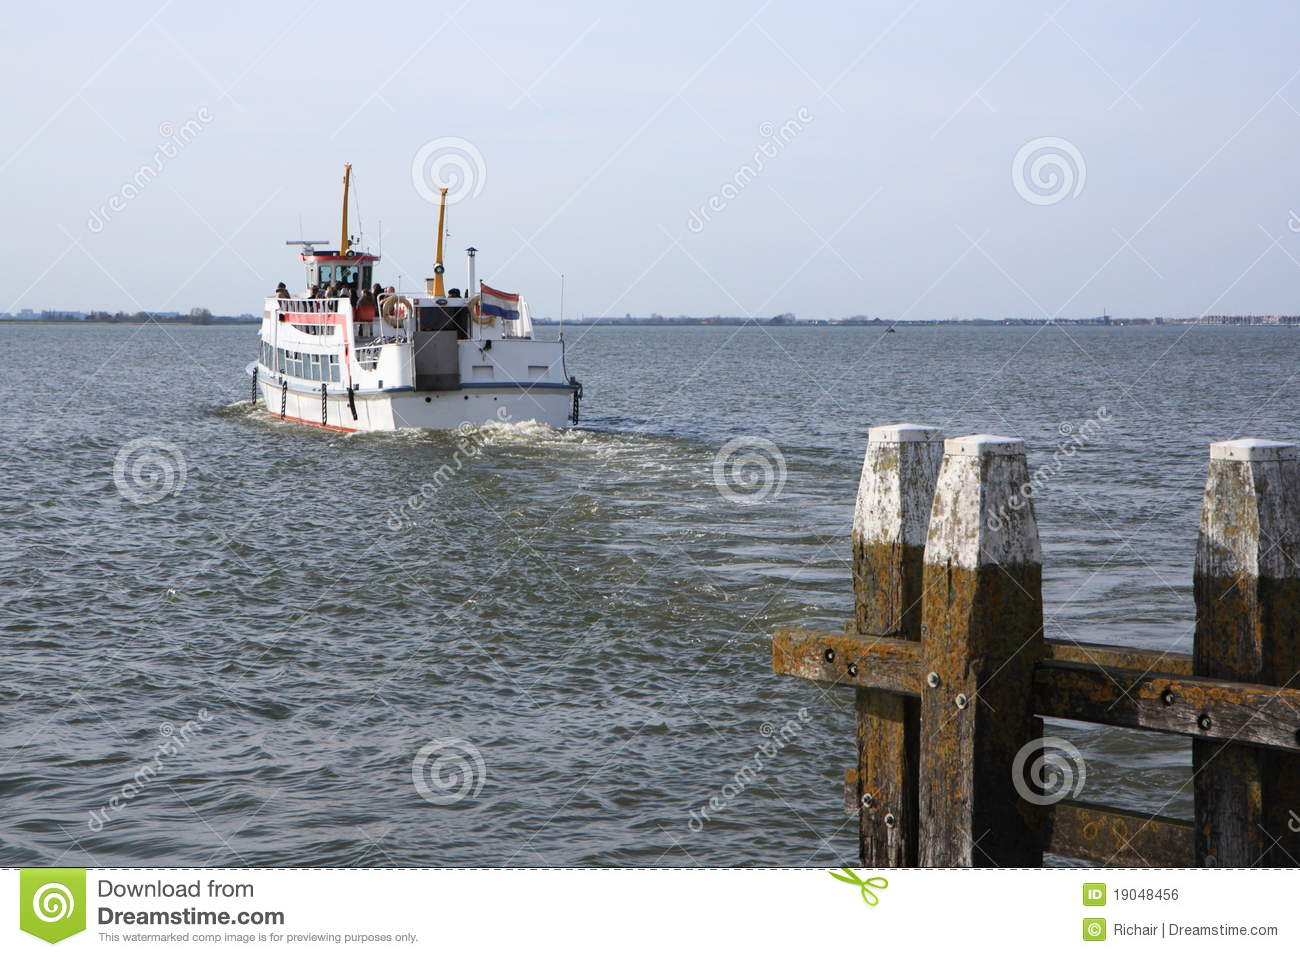 Boat Leaving Port Royalty Free Stock Image - Image: 19048456